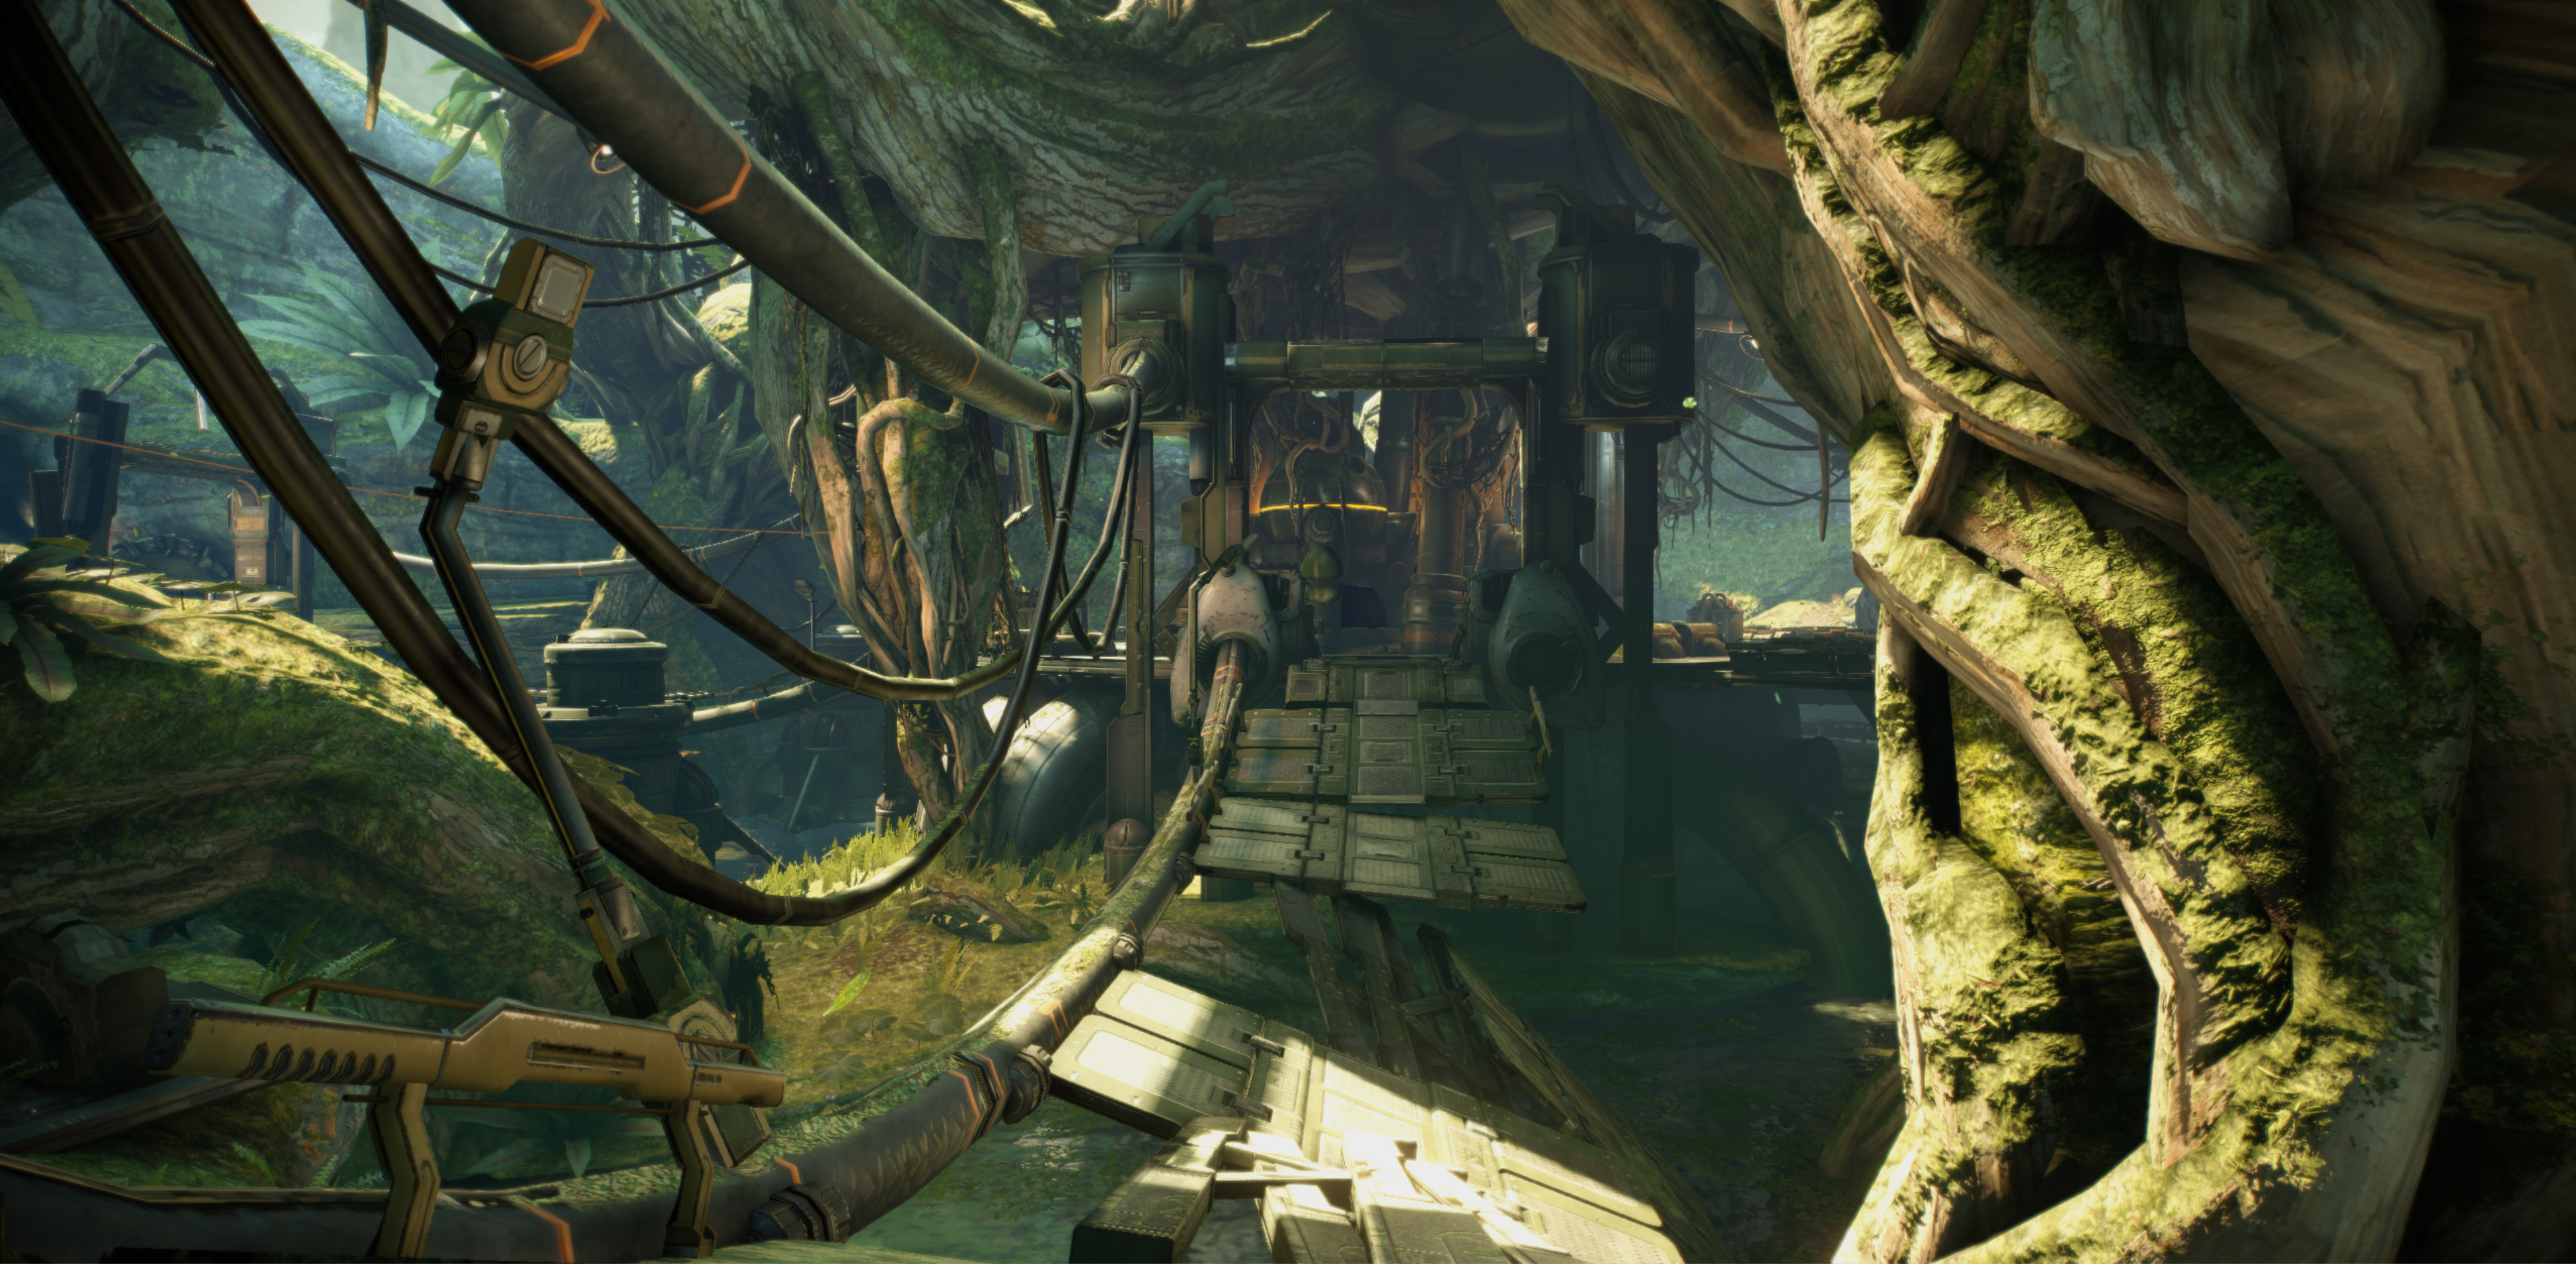 News all news clash with grineer amidst luscious vegetation and envelope your warframe in the naturalistic lighting and a remastered soundscape visit any of the earth malvernweather Gallery